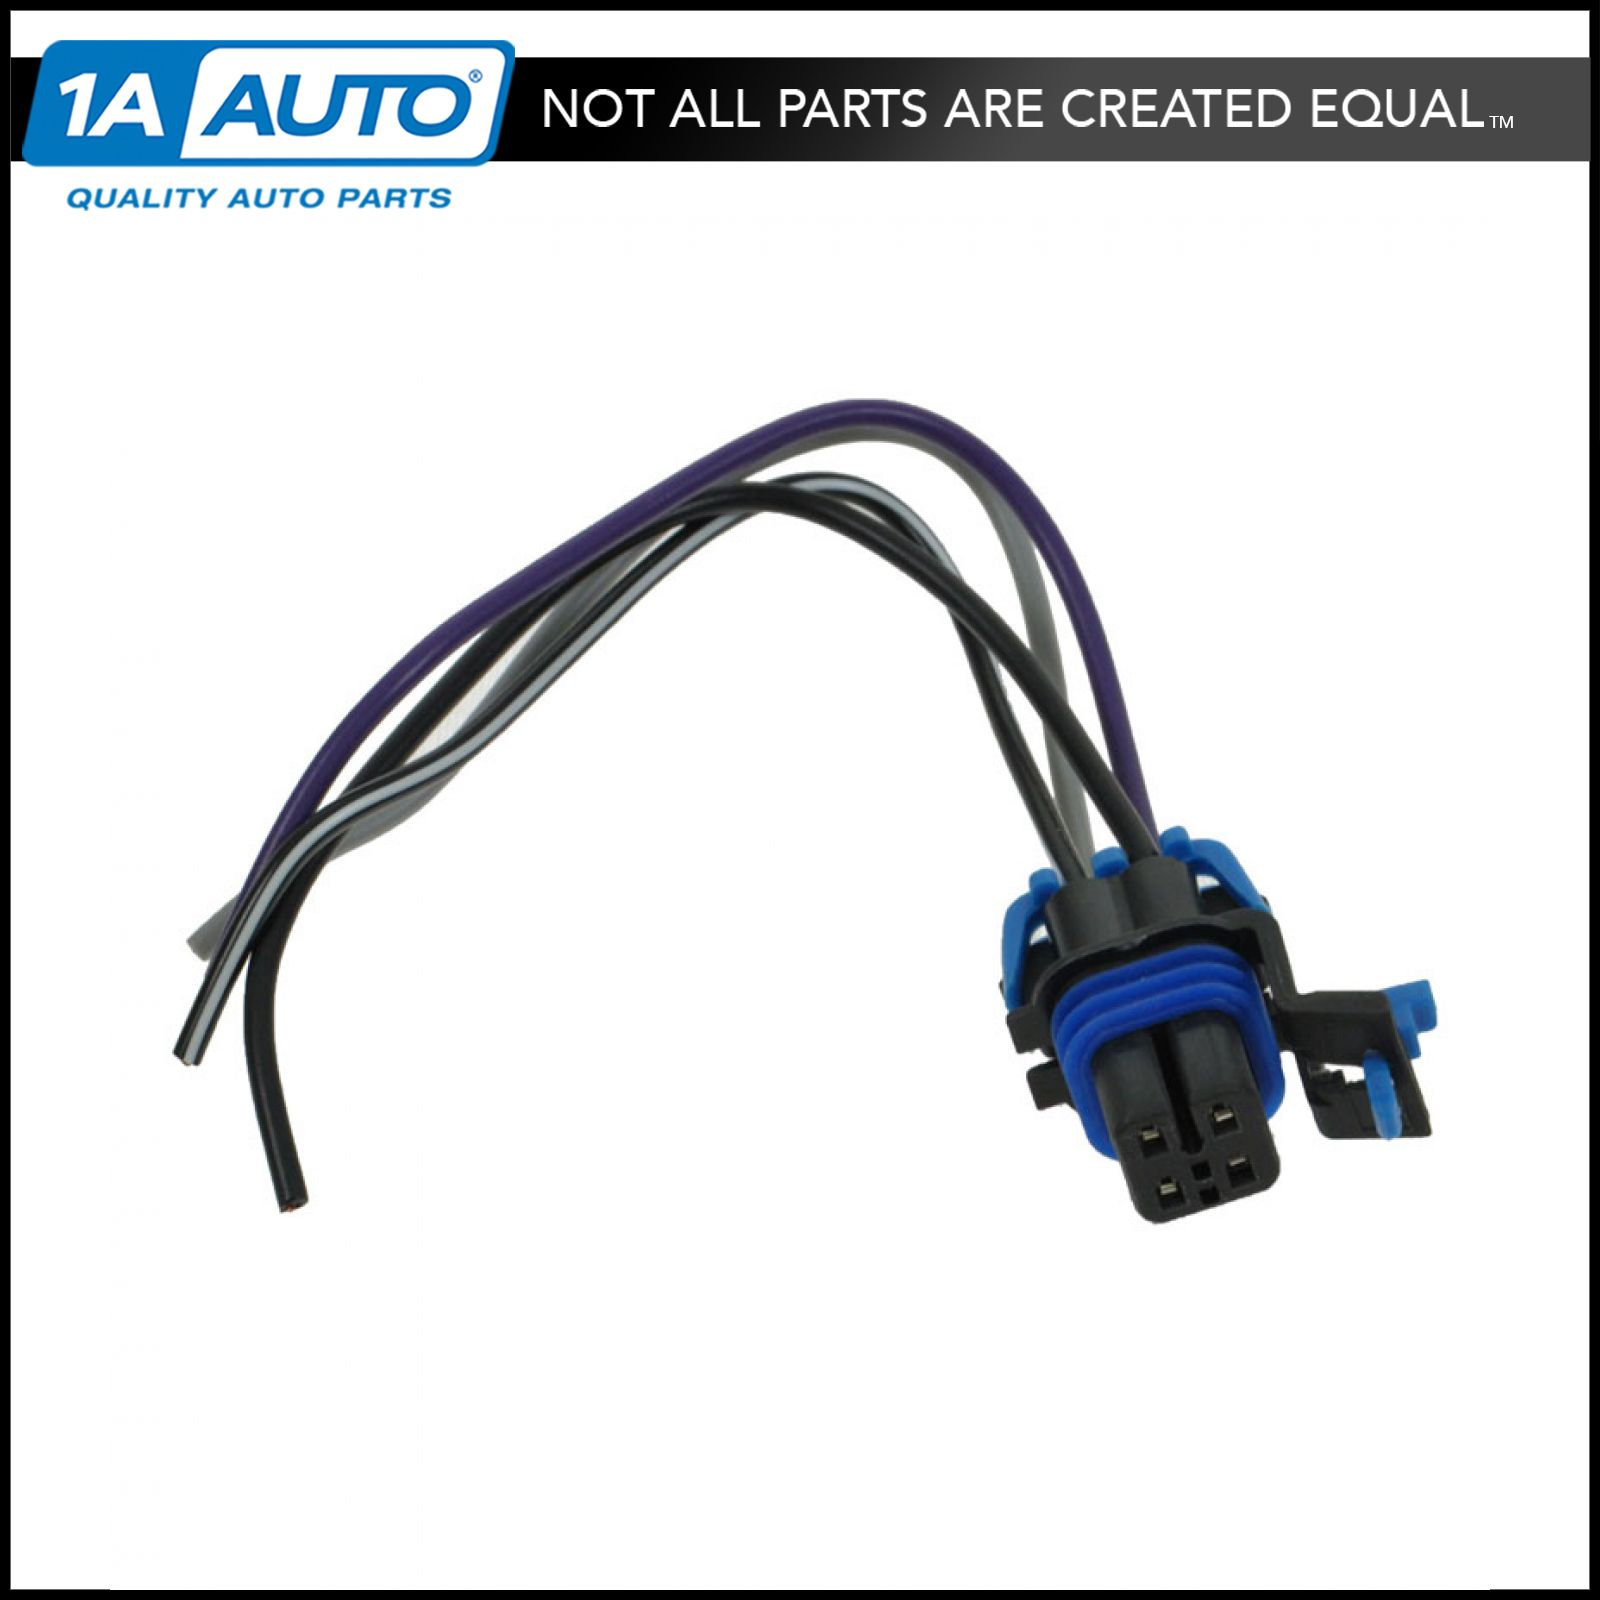 Fuel Pump Wiring Harness with Square Connector 4 Wire Pigtail for Chevy GM